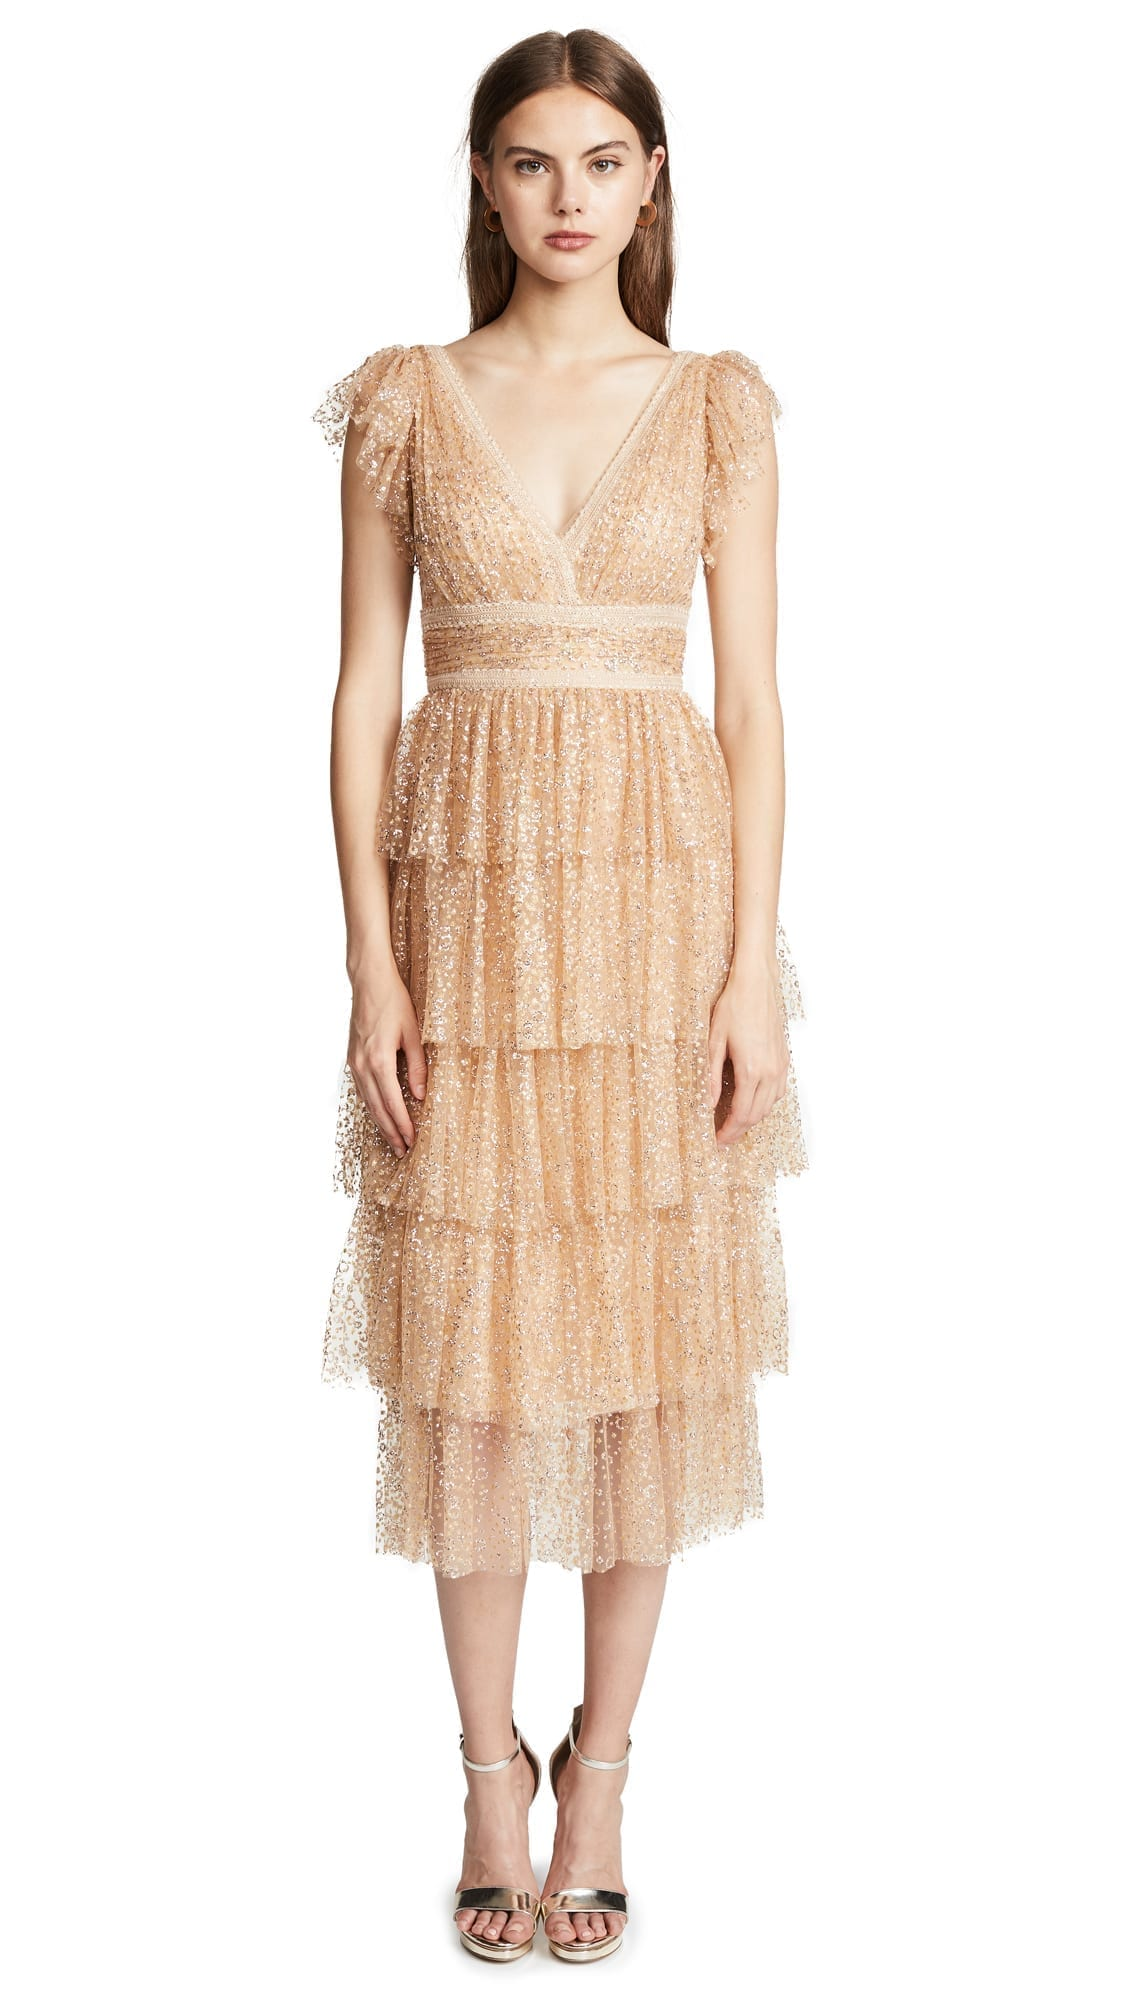 MARCHESA NOTTE Glitter Tulle Cocktail Champagne Dress